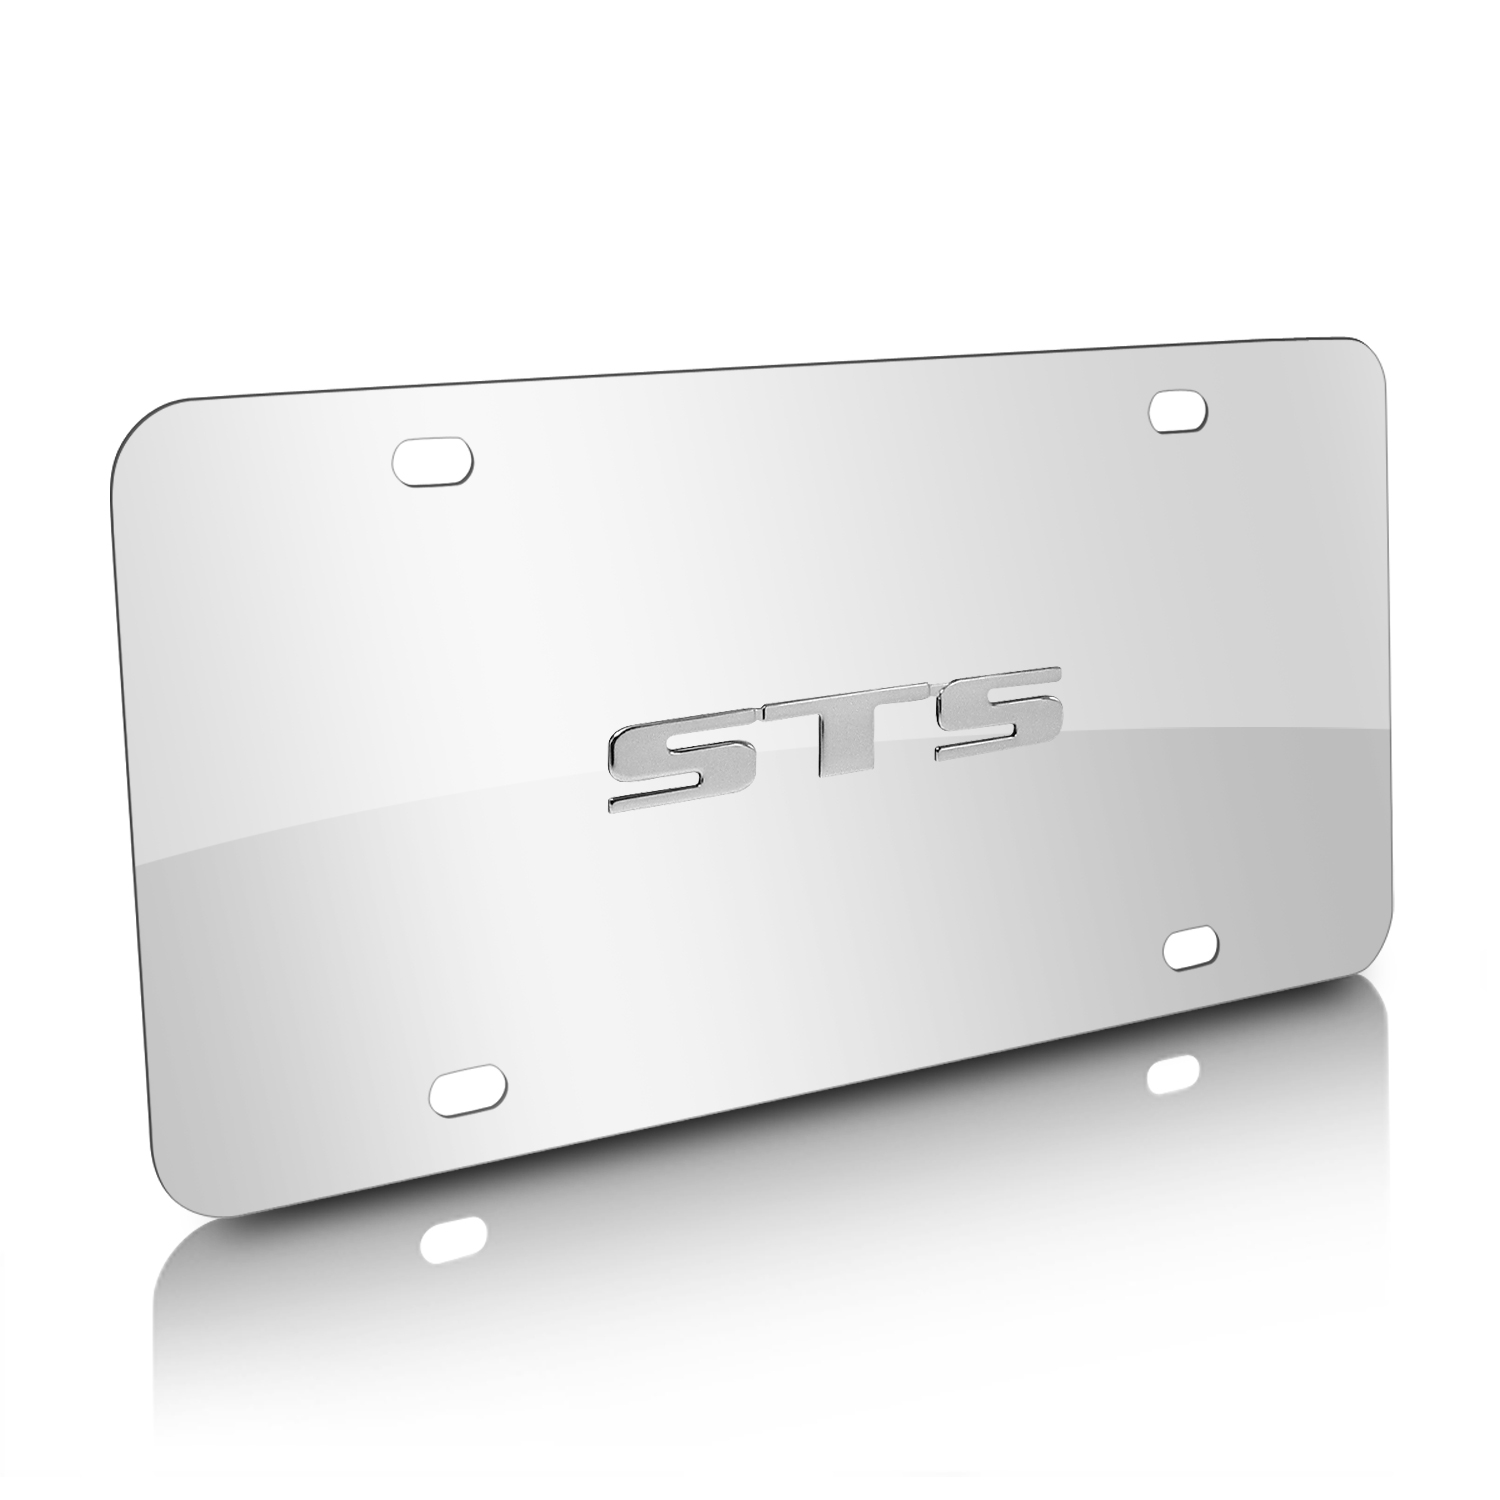 Cadillac STS Name 3D Logo Chrome Stainless Steel License Plate